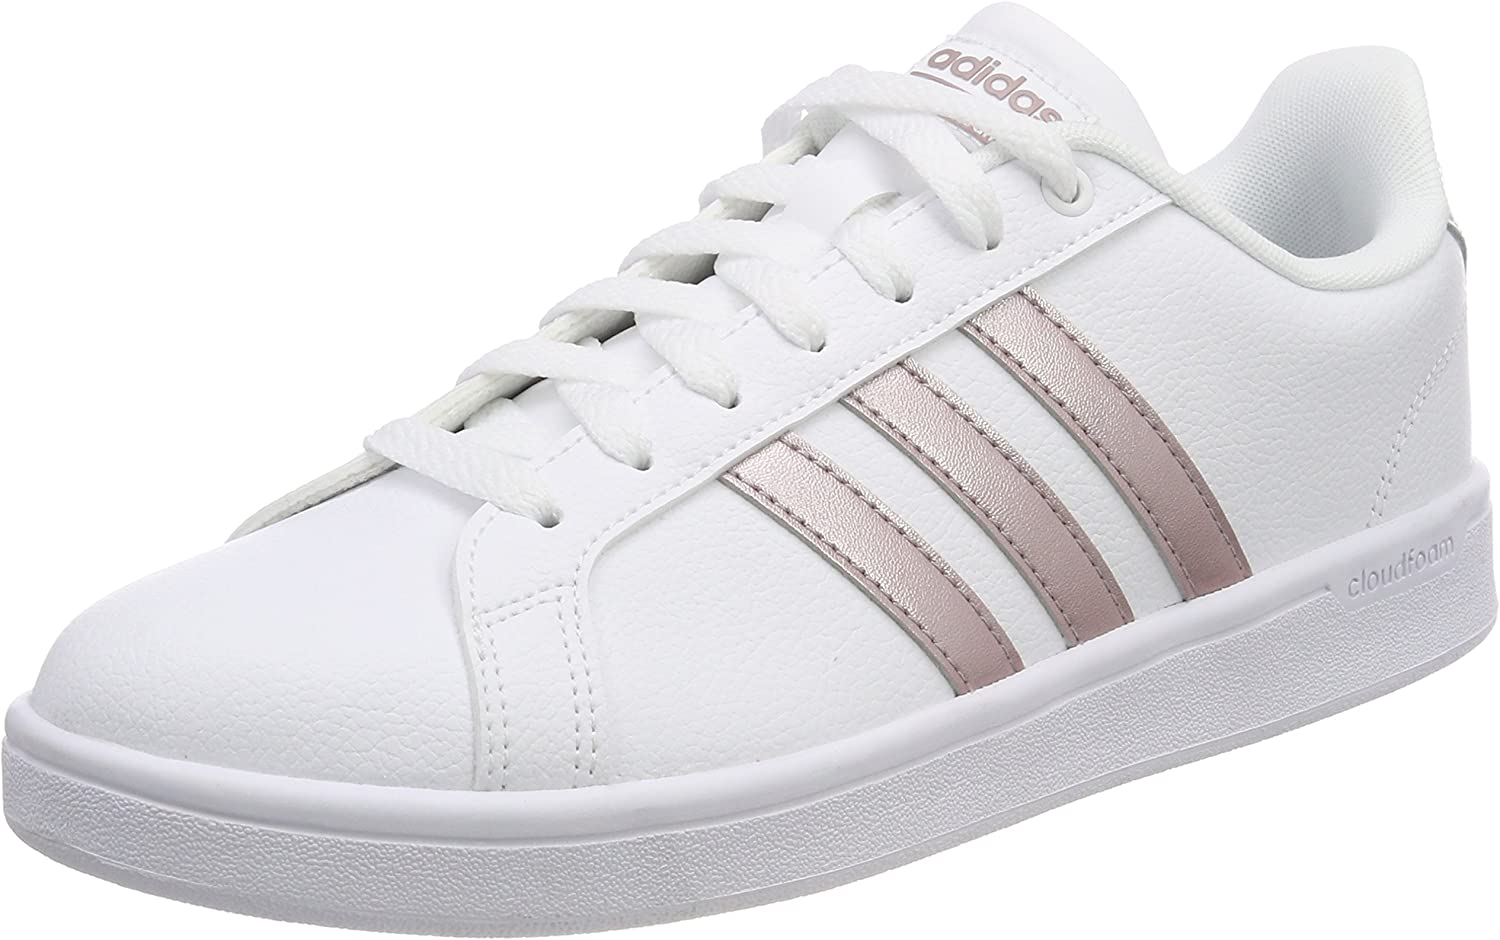 Adidas rose gold cloudfoam. in 2020 | Adidas schuhe frauen